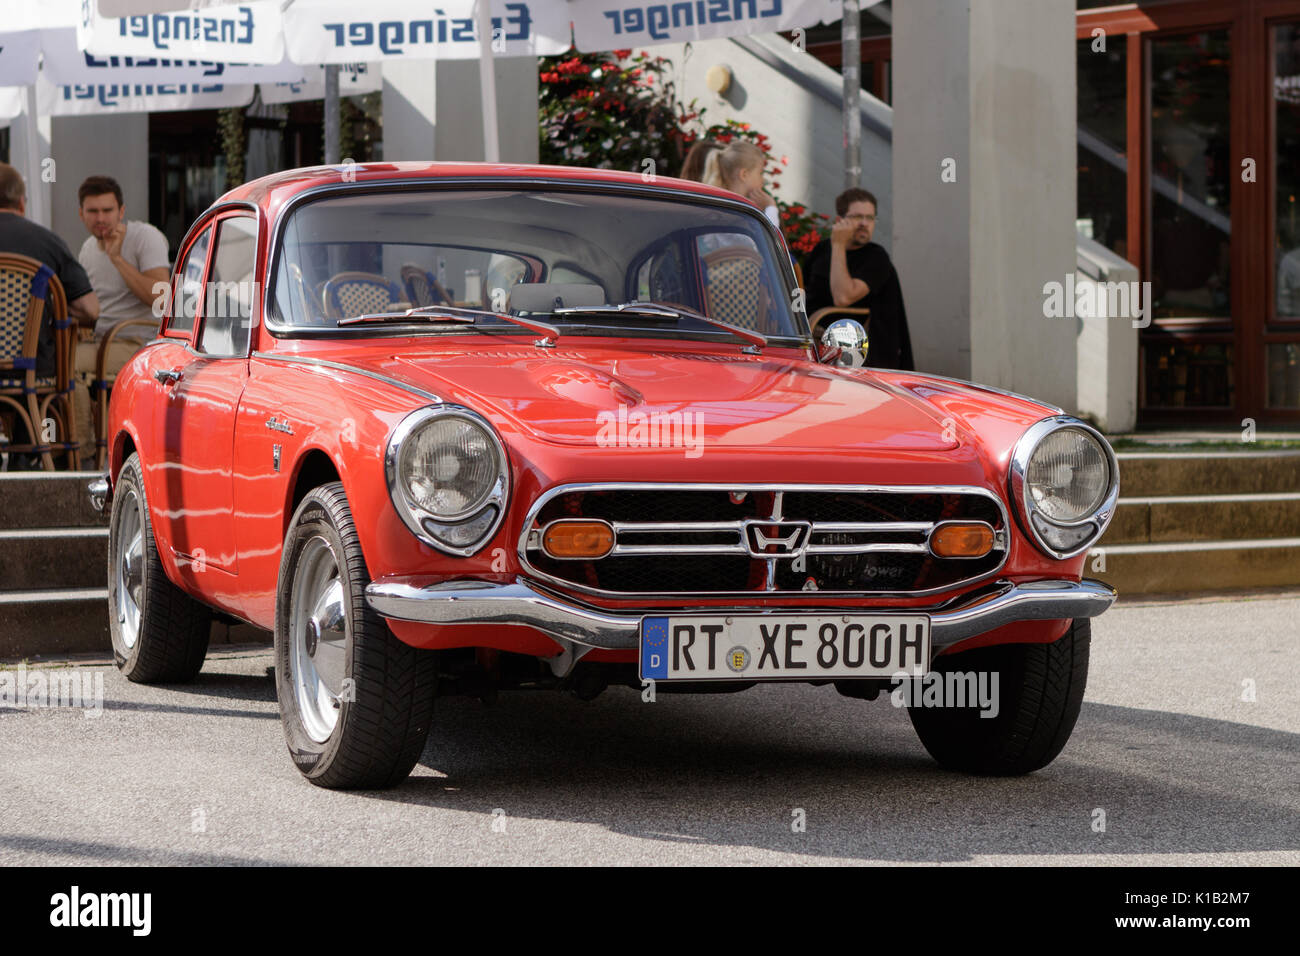 Ordinaire Reutlingen, Germany   August 20, 2017: Honda S 800 Oldtimer Car At The